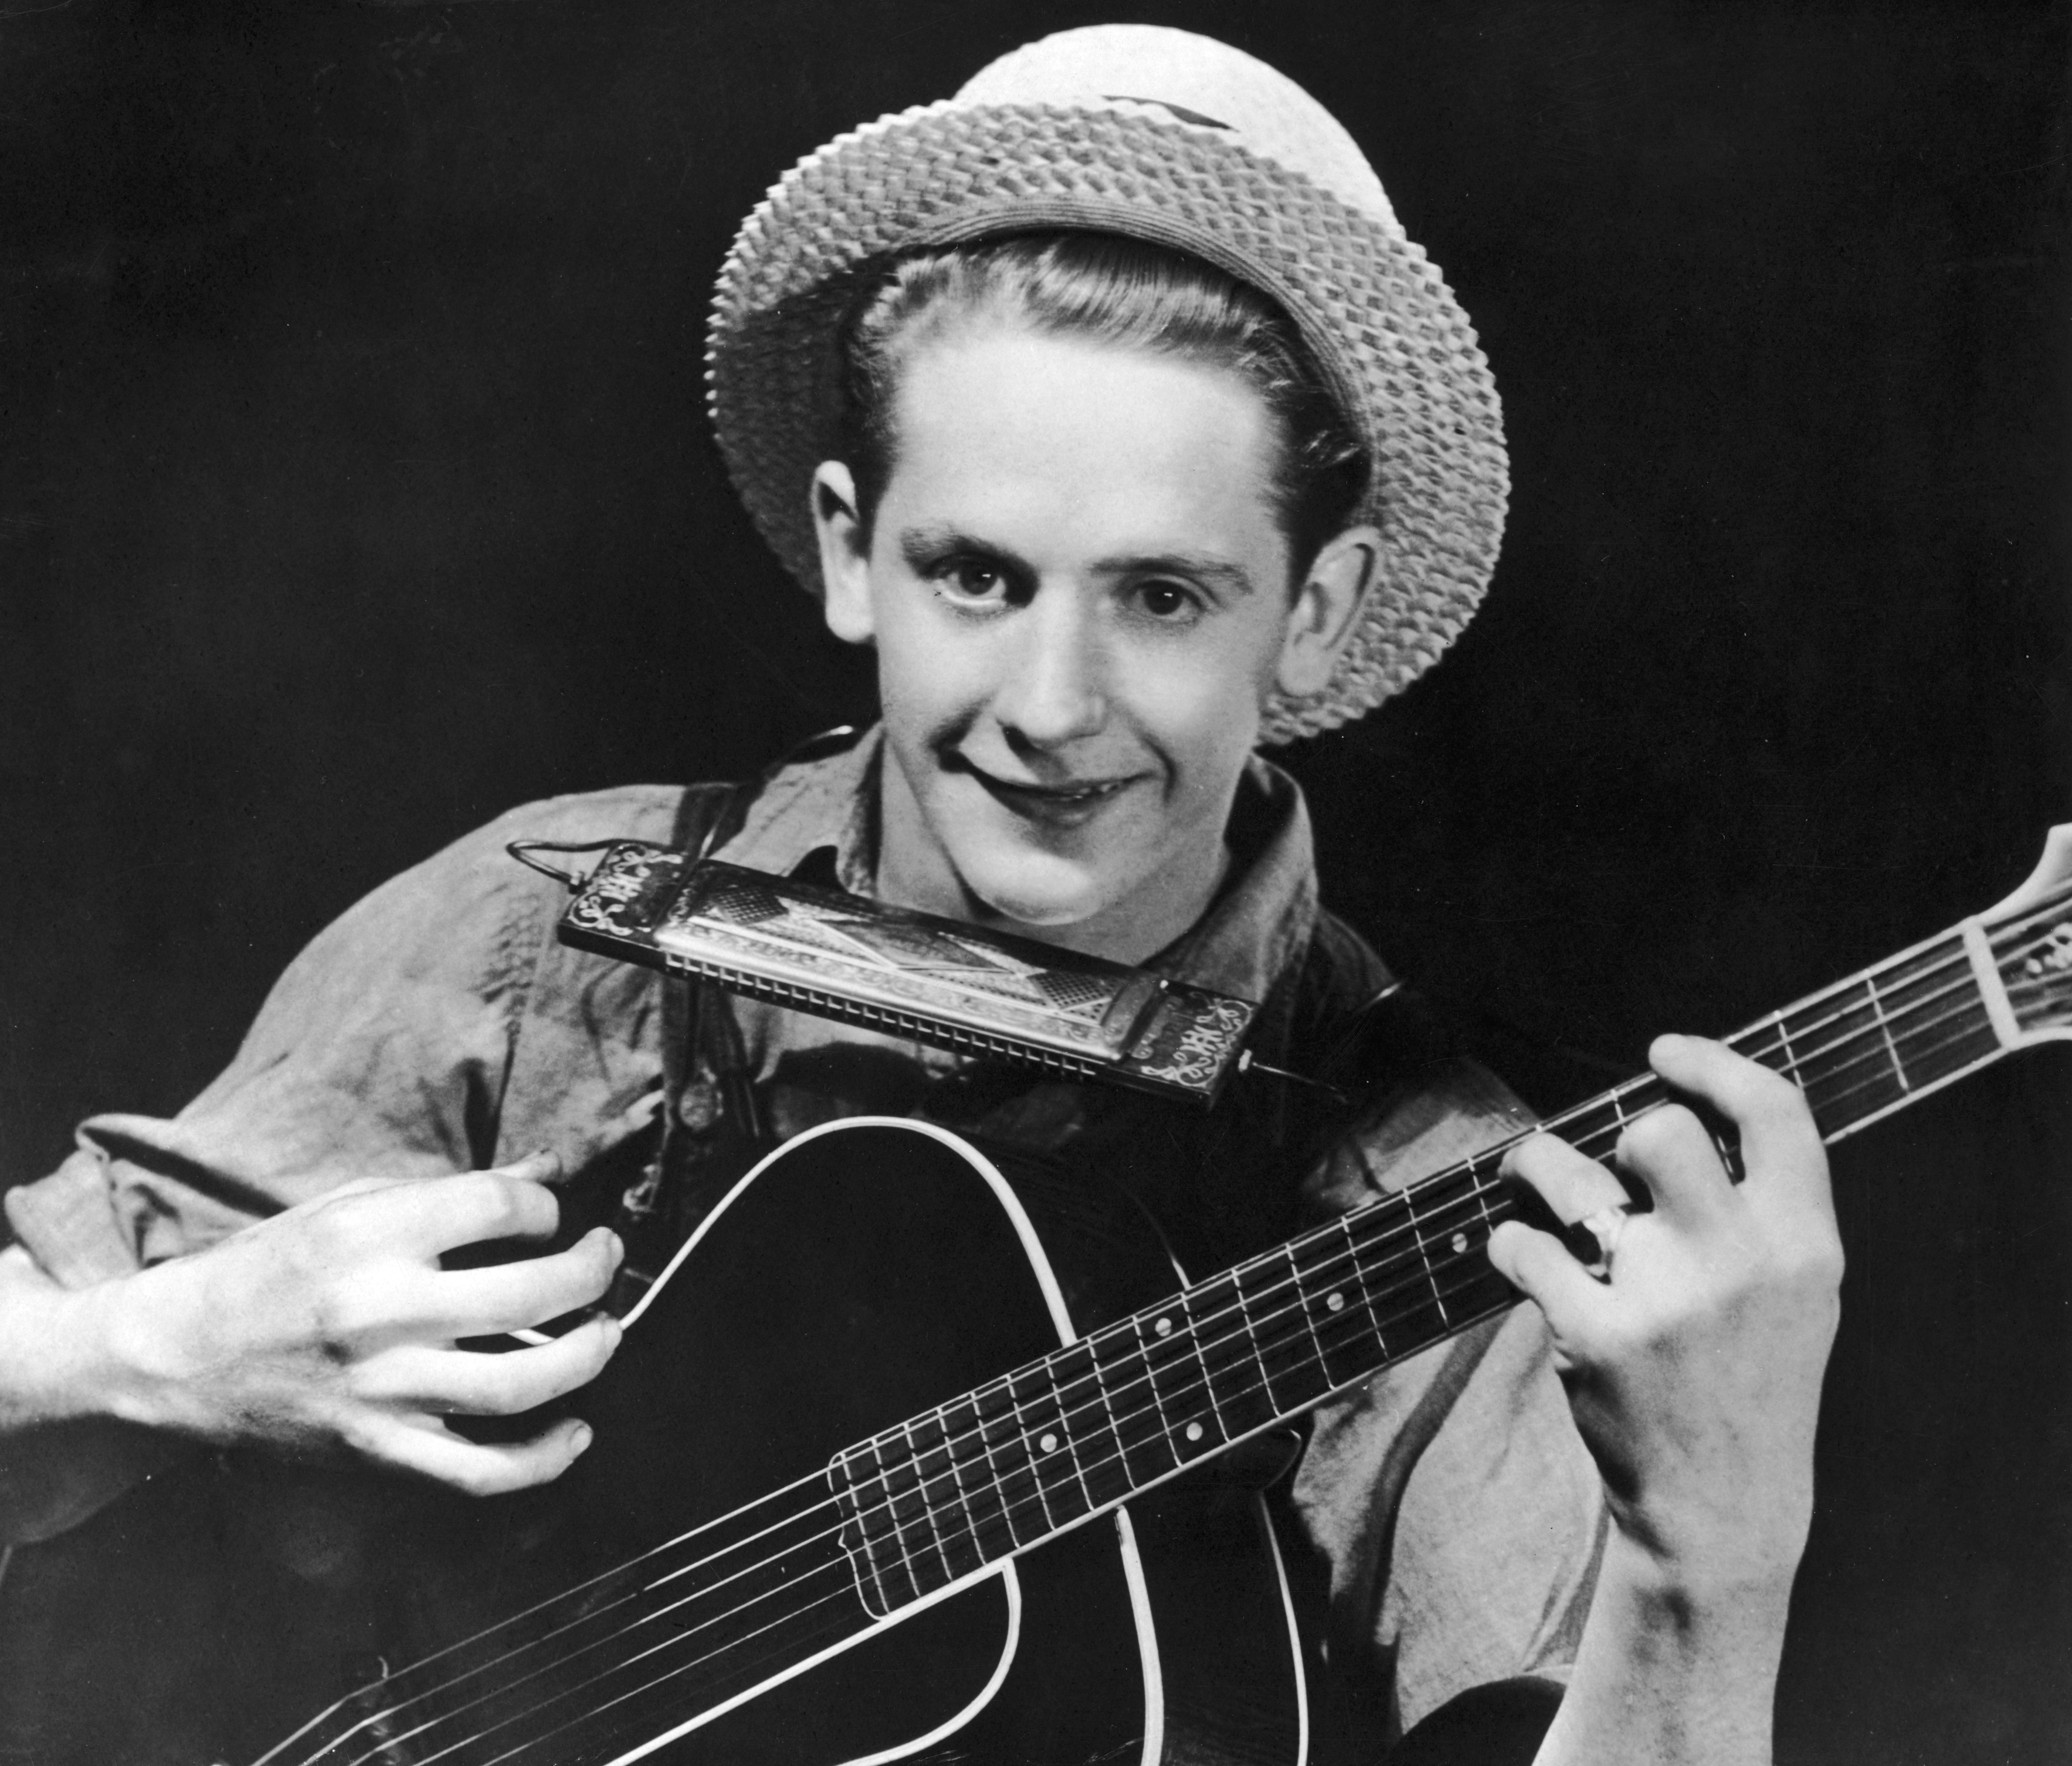 Les Paul was a Grammy Award-winning guitarist and inventor whose innovations helped shape the sound of rock and roll. Paul, shown above in a 1935 photo, pioneered the shift from the acoustic to electric guitar and later developed multitrack recording, which allowed groups to record different parts of their compositions at different times.